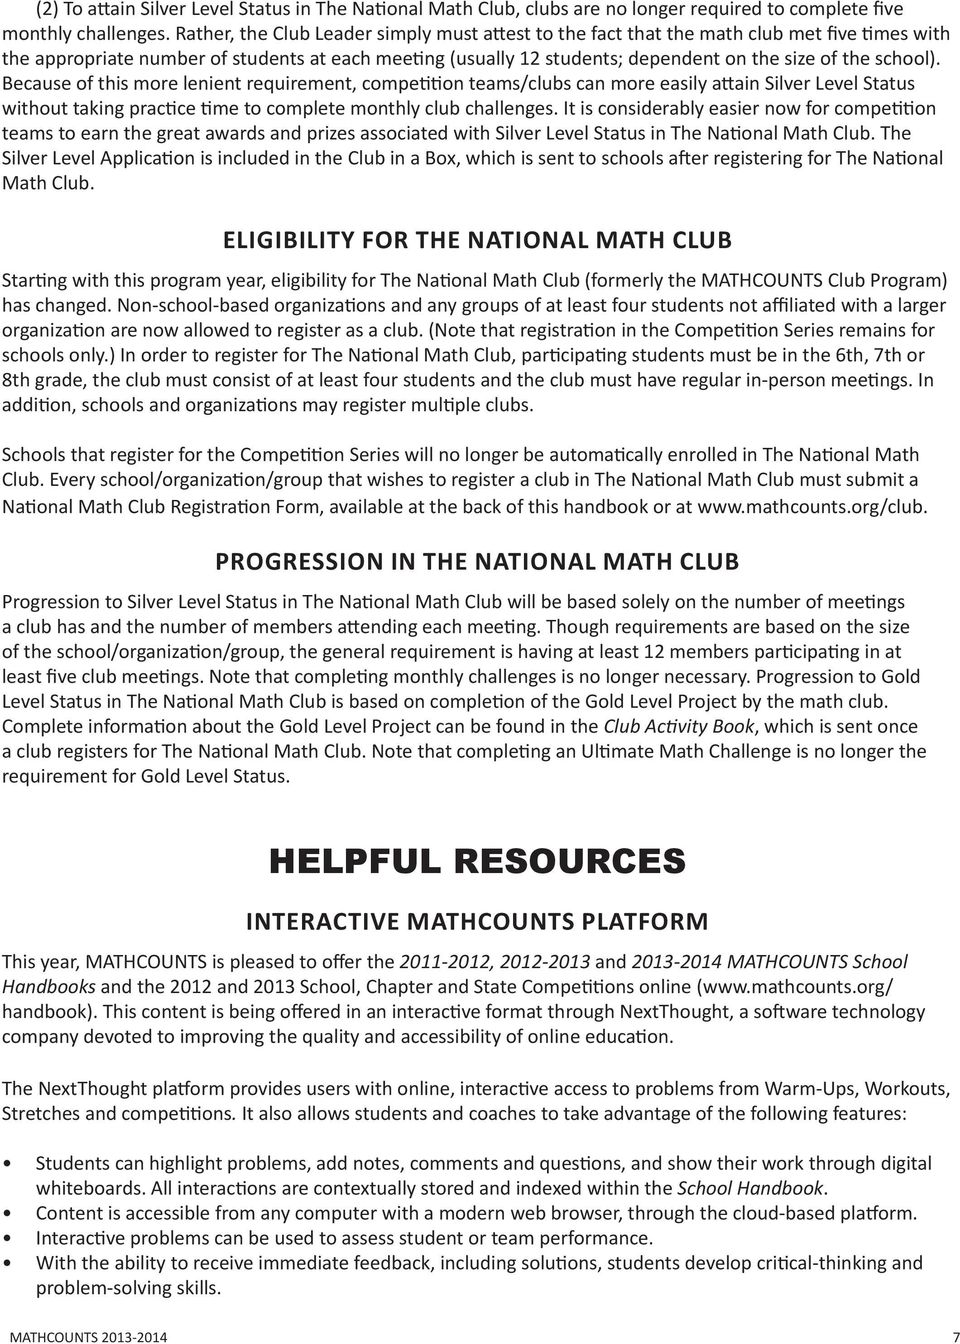 School handbook contains 300 creative math problems that meet nctm mathcounts school because of this more lenient requirement competition teamsclubs can more fandeluxe Choice Image